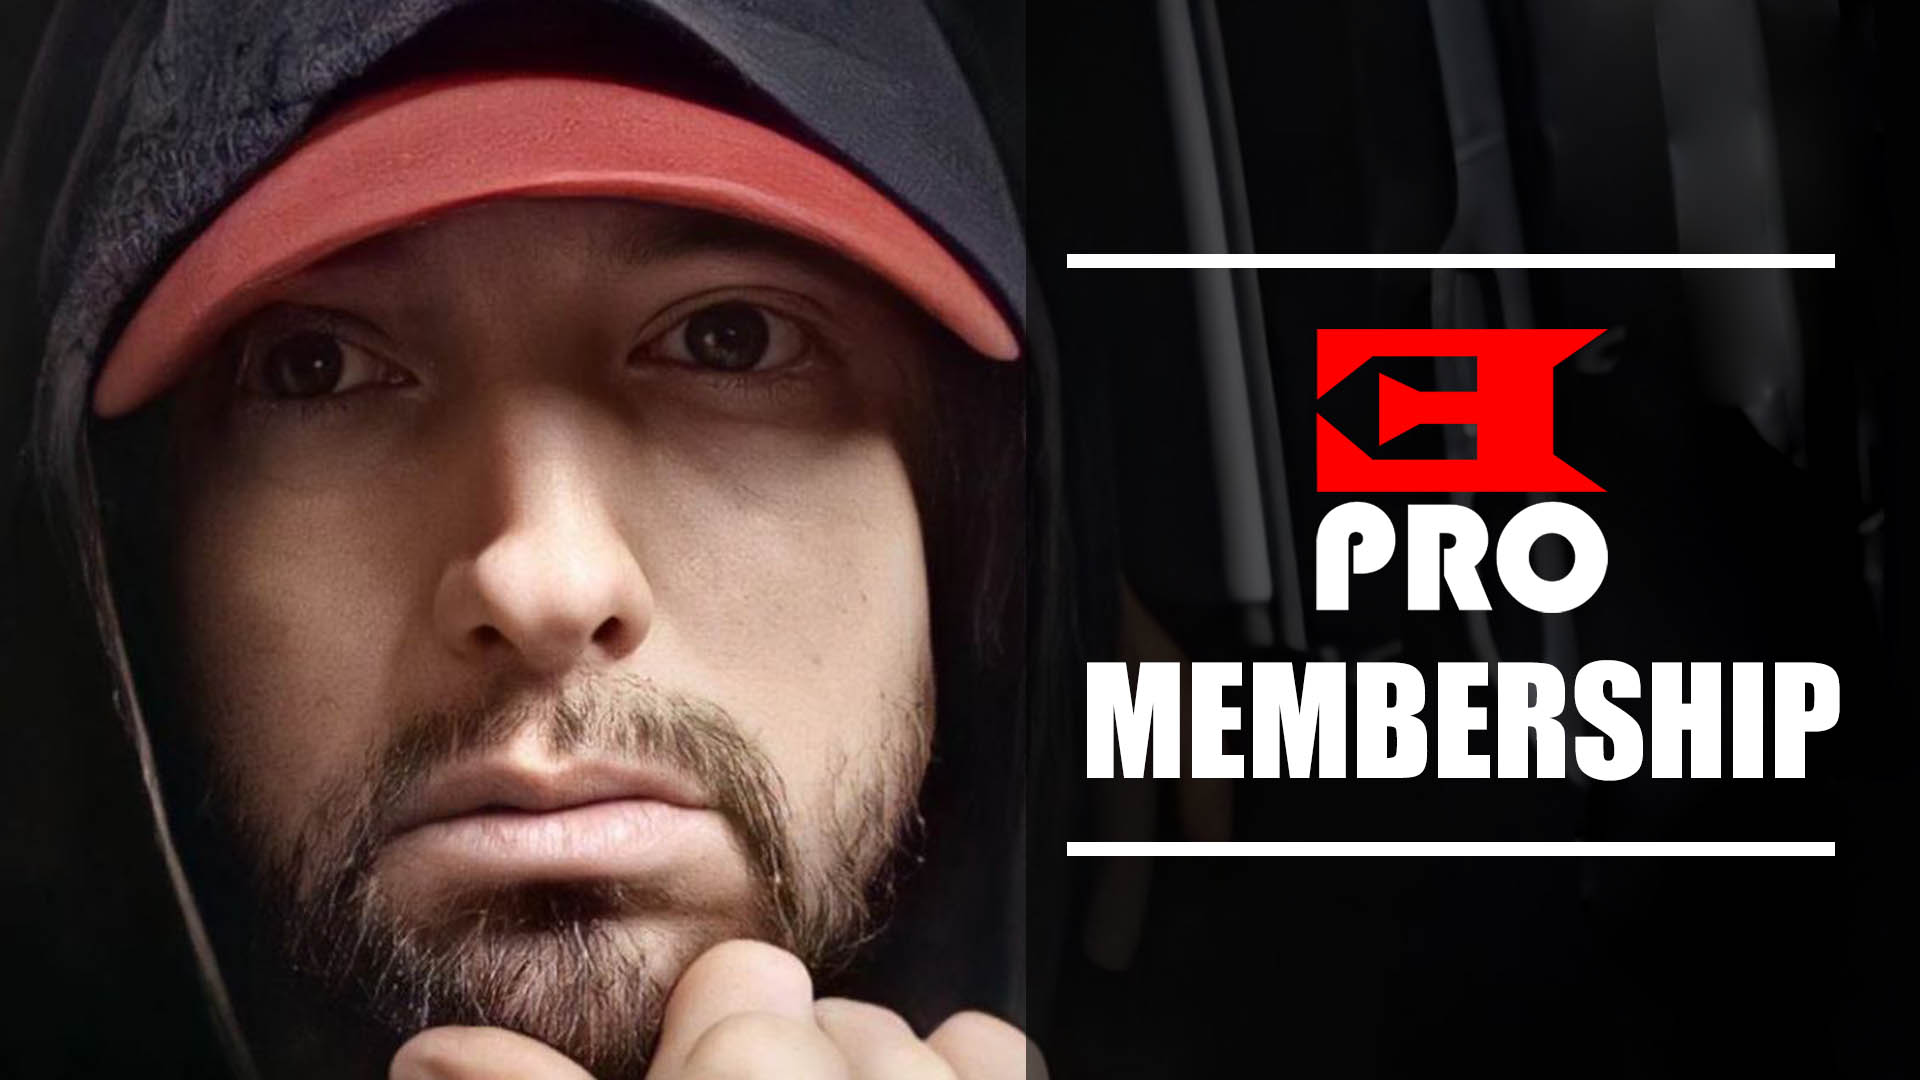 Support Eminem.Pro: Channel Membership